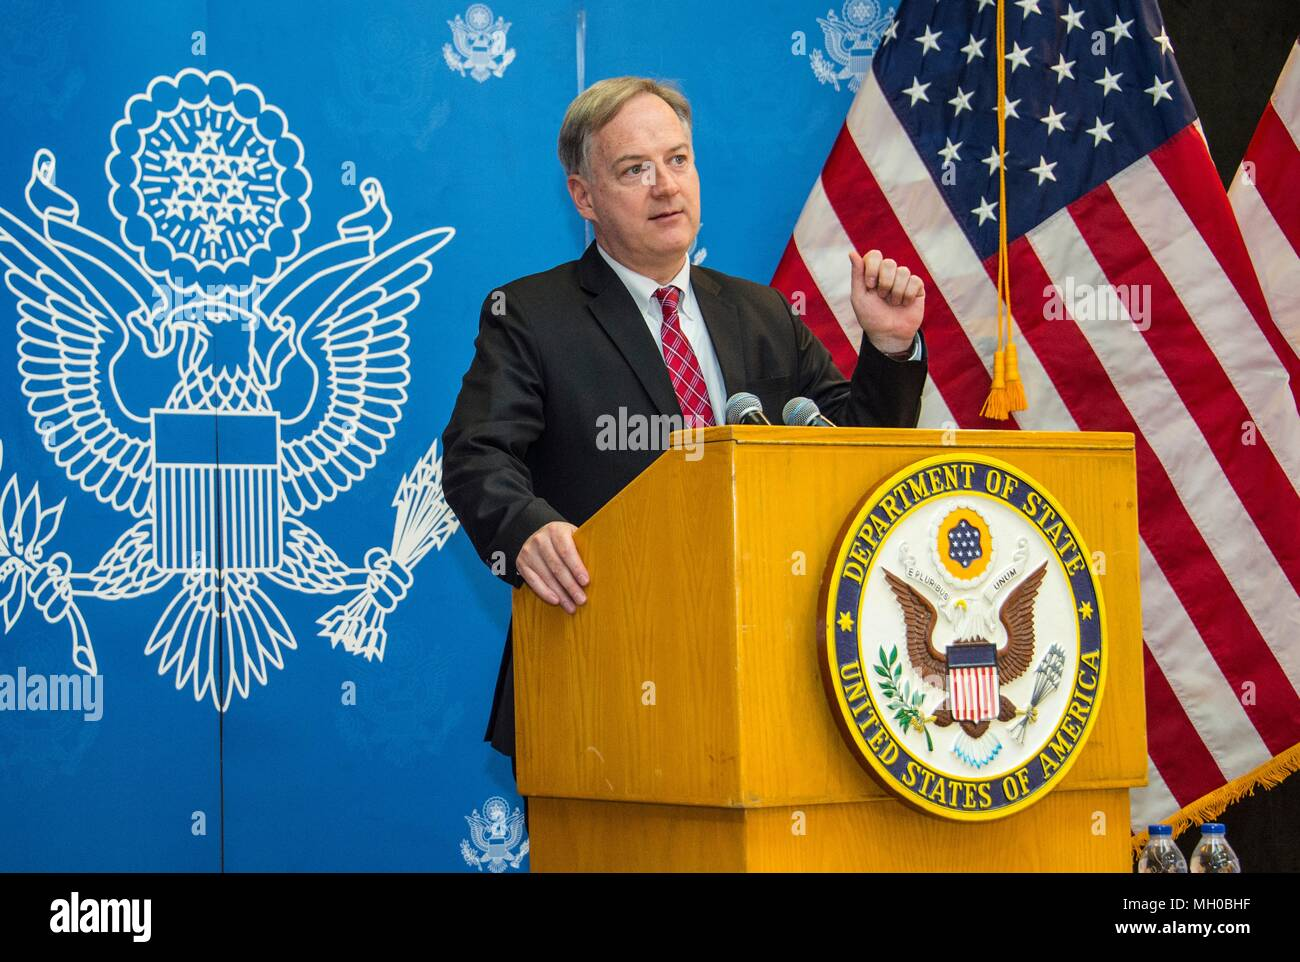 U.S. Embassy Chargé d'Affaires Christopher Henzel introduces U.S. Secretary of State Mike Pompeo, before he delivers remarks to staff and families from U.S. Embassy Riyadh April 29, 2018 in Riyadh, Saudi Arabia. - Stock Image